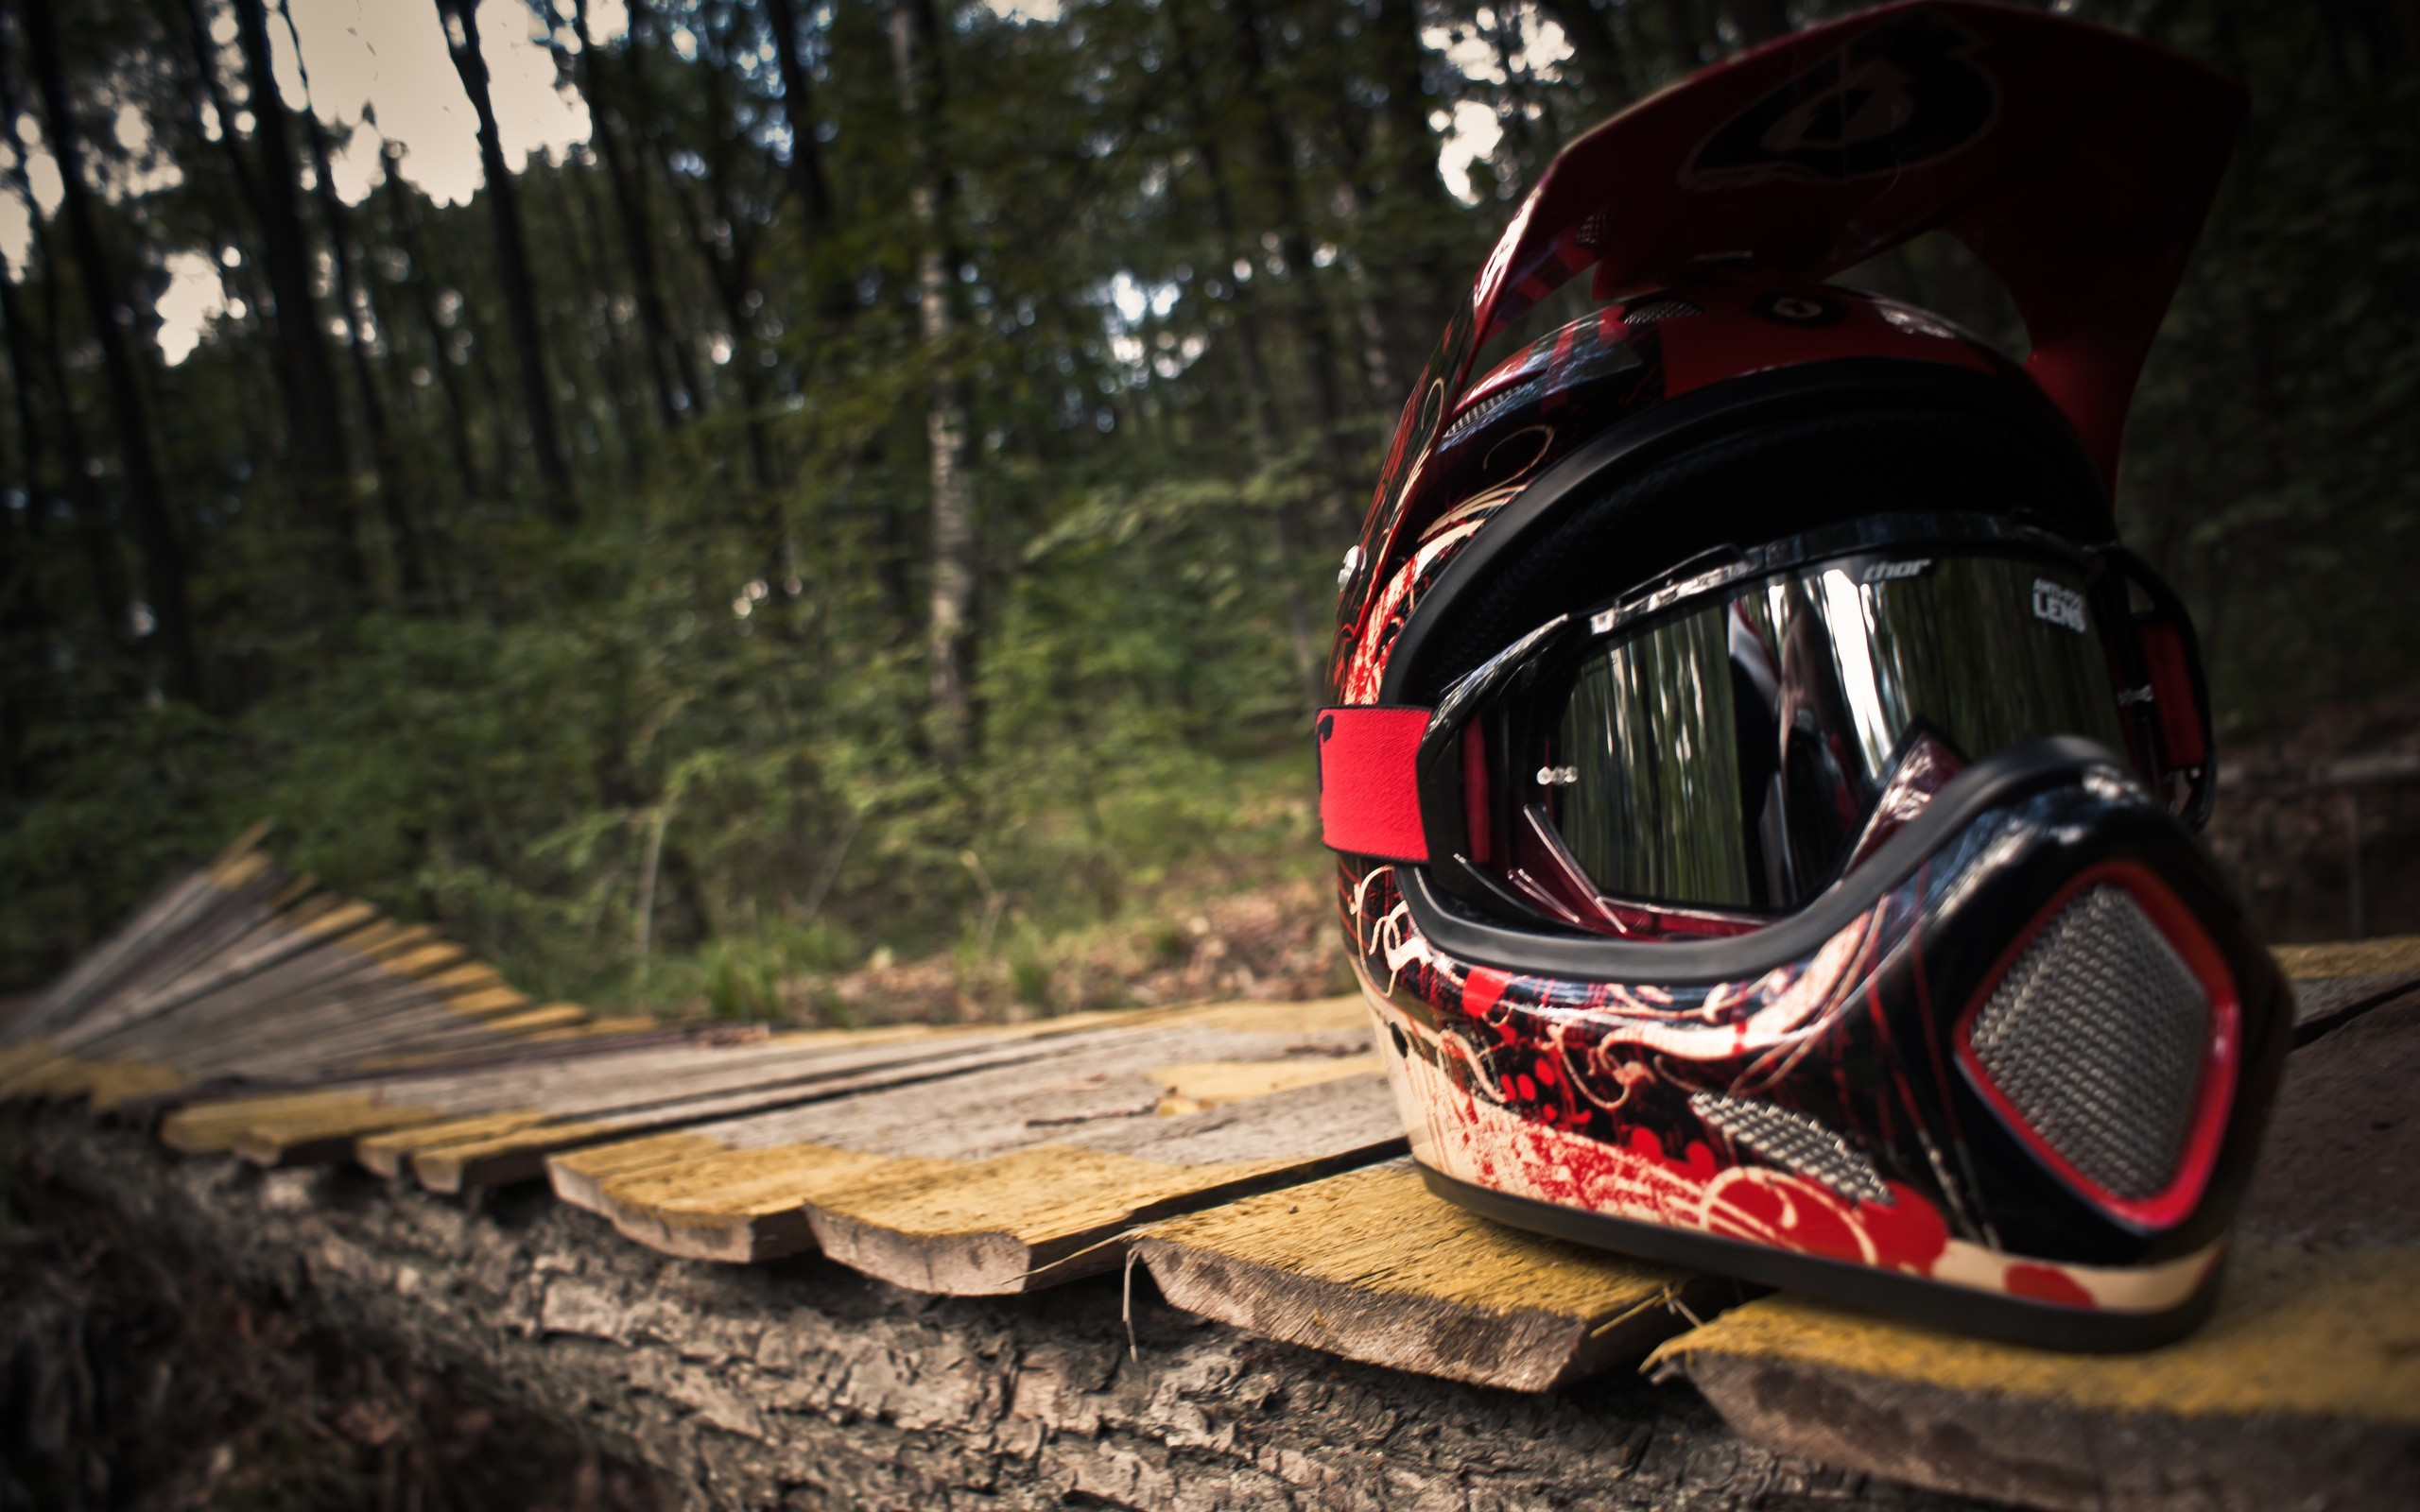 wallpaper casco motocross 2560x1600